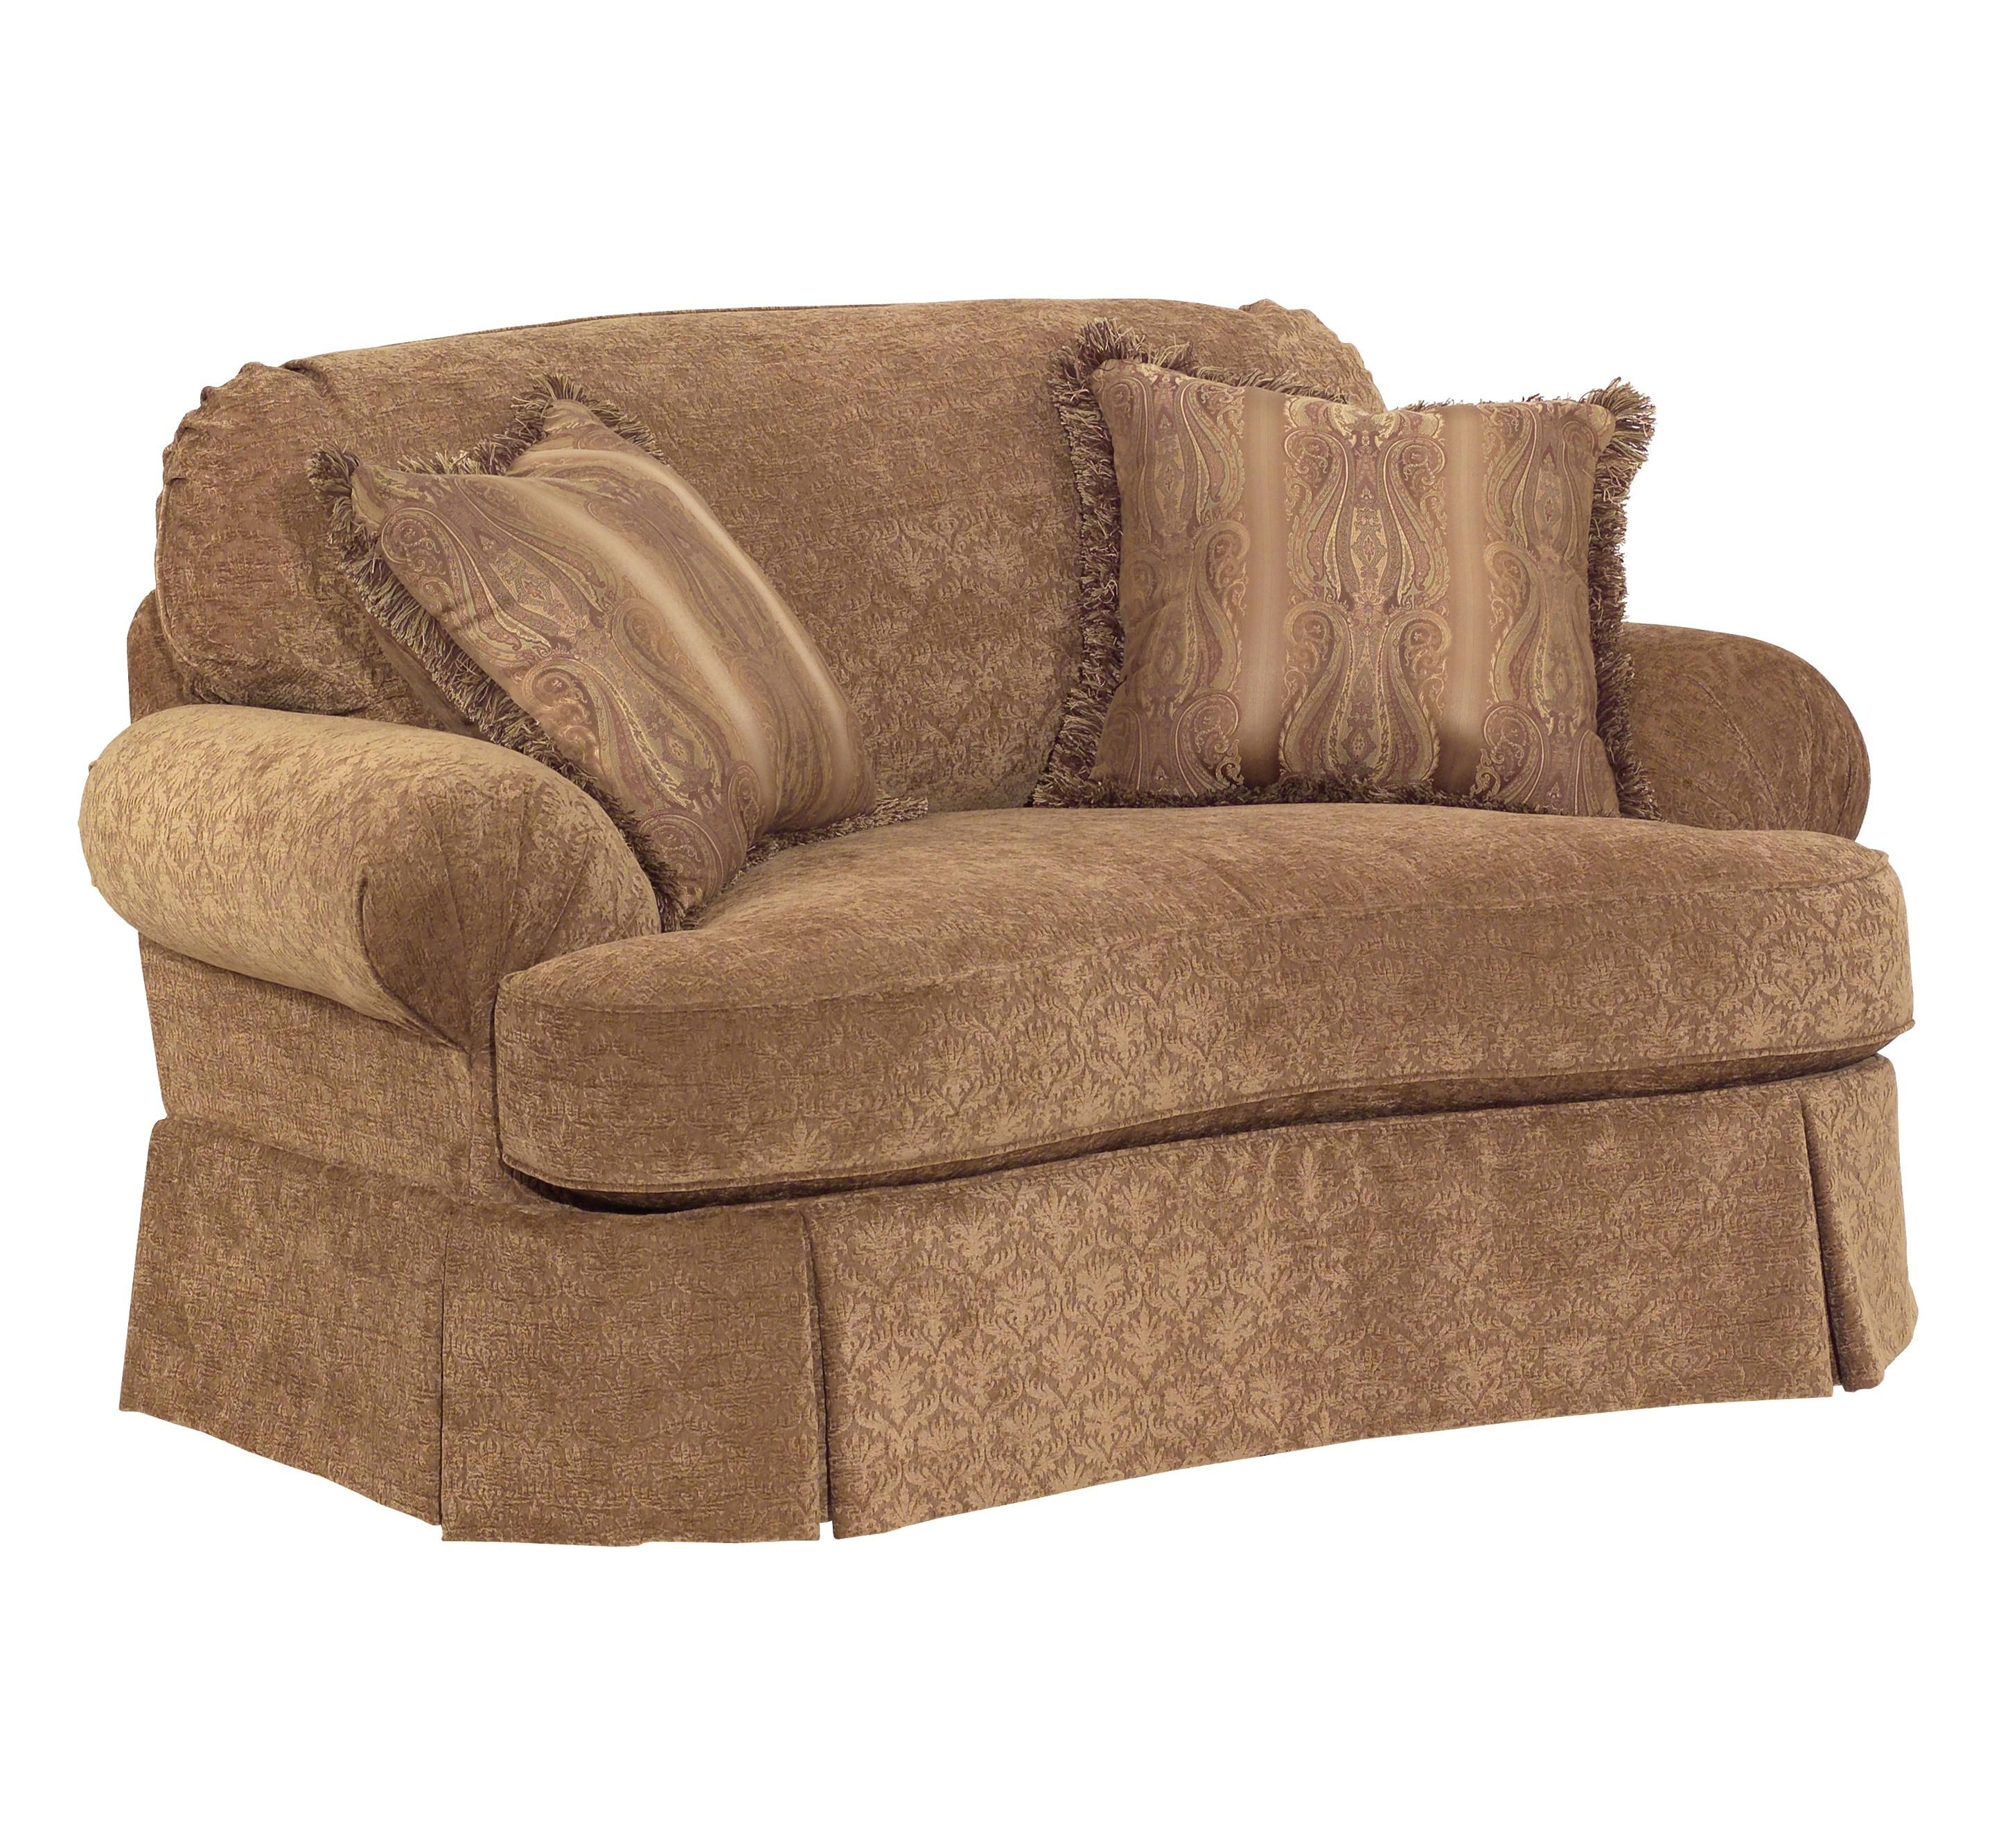 Best This Skirted Oversized Chair Will Make For A Beautiful 640 x 480